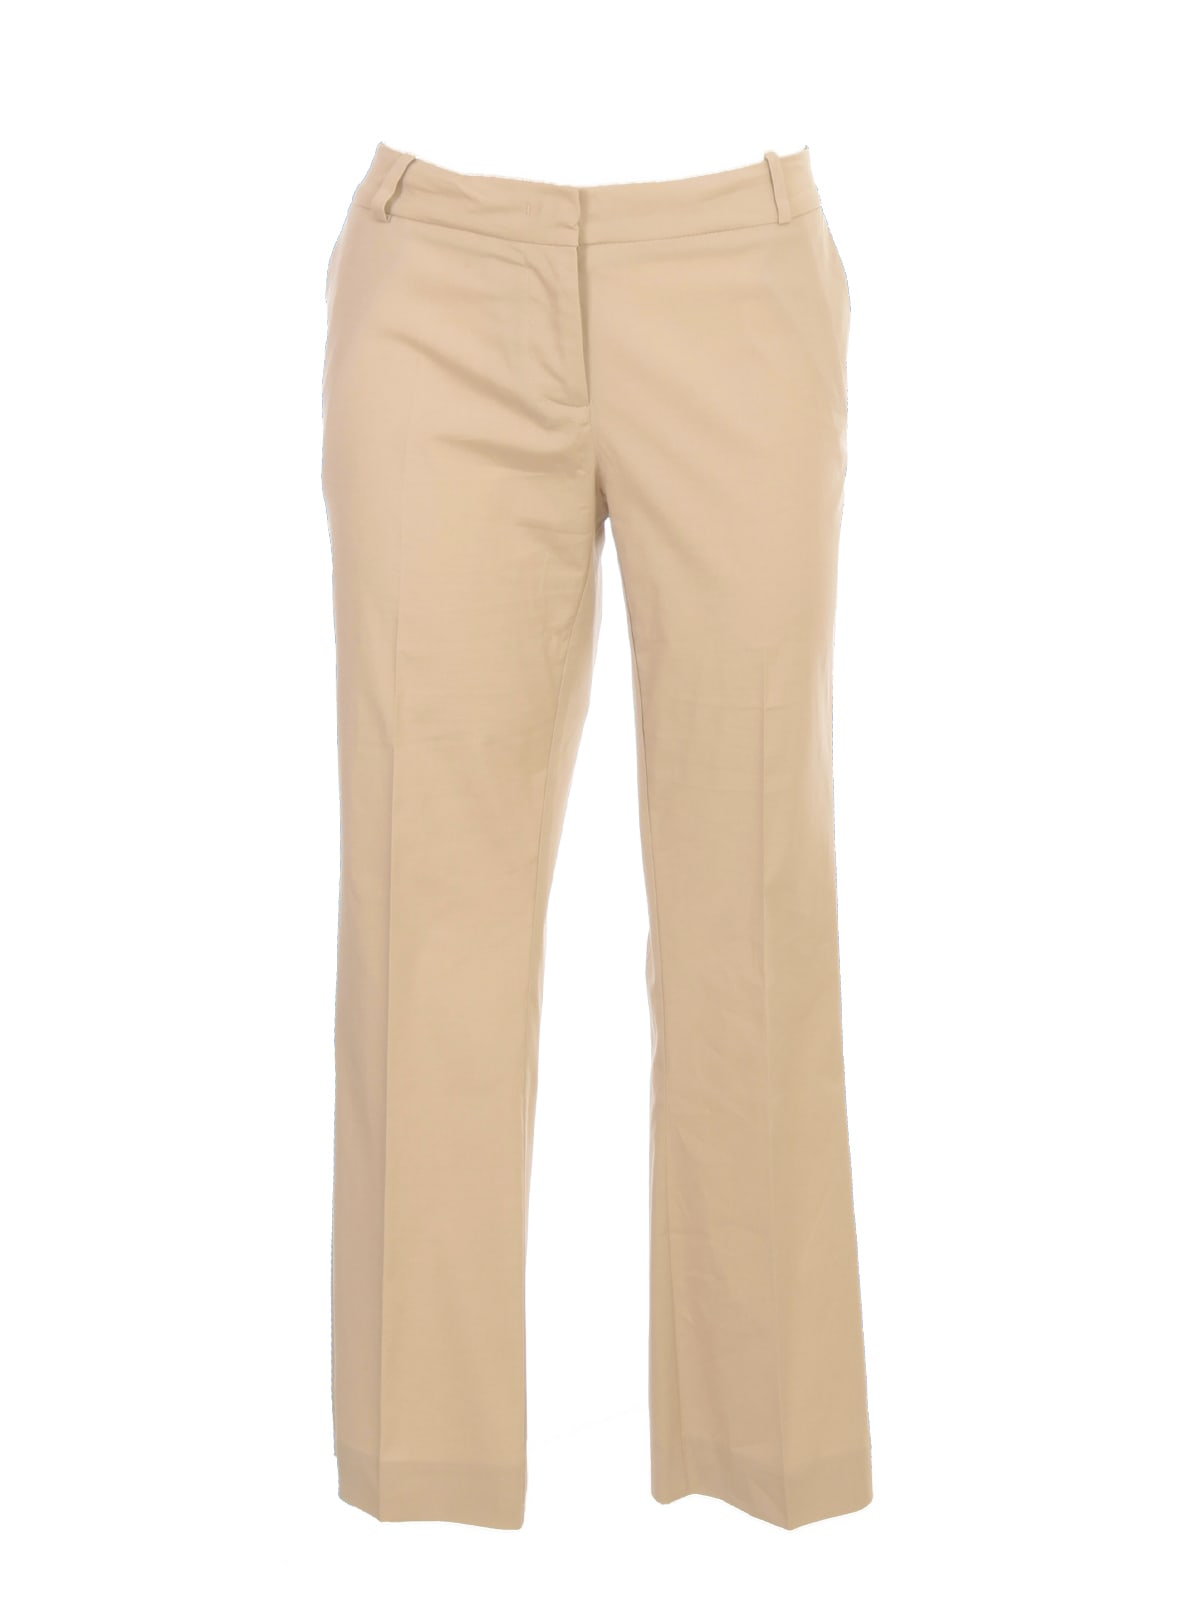 Florette Flared Cropped Pants Cotton Stretch